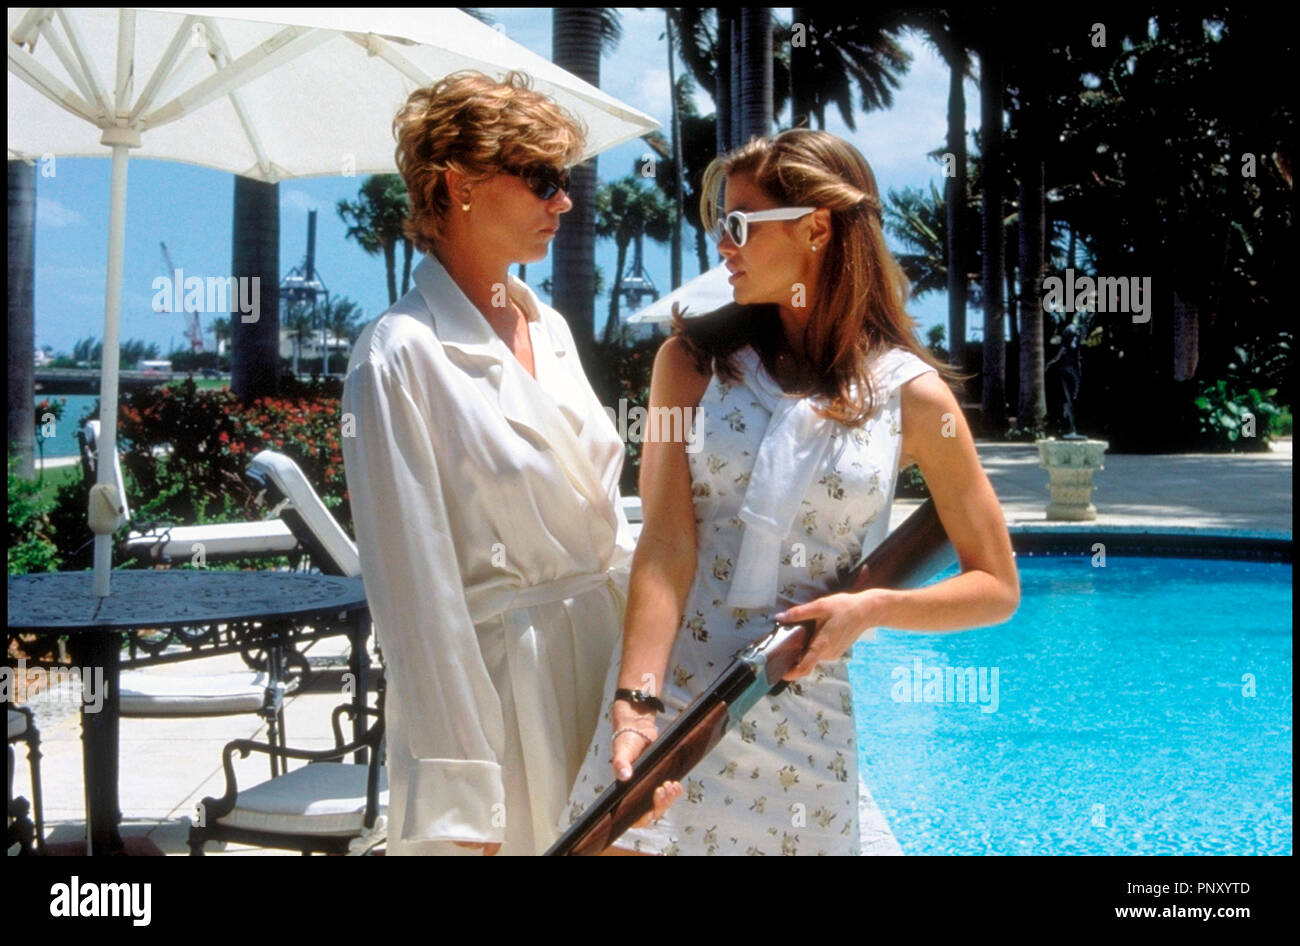 Prod DB © Mandalay / DR SEXCRIMES (WILD THINGS) de John Mc Naughton 1998 USA avec Theresa Russell et Denise Richards piscine, ball trap, fusil de chasse, mere et fille, lunettes de soleil - Stock Image